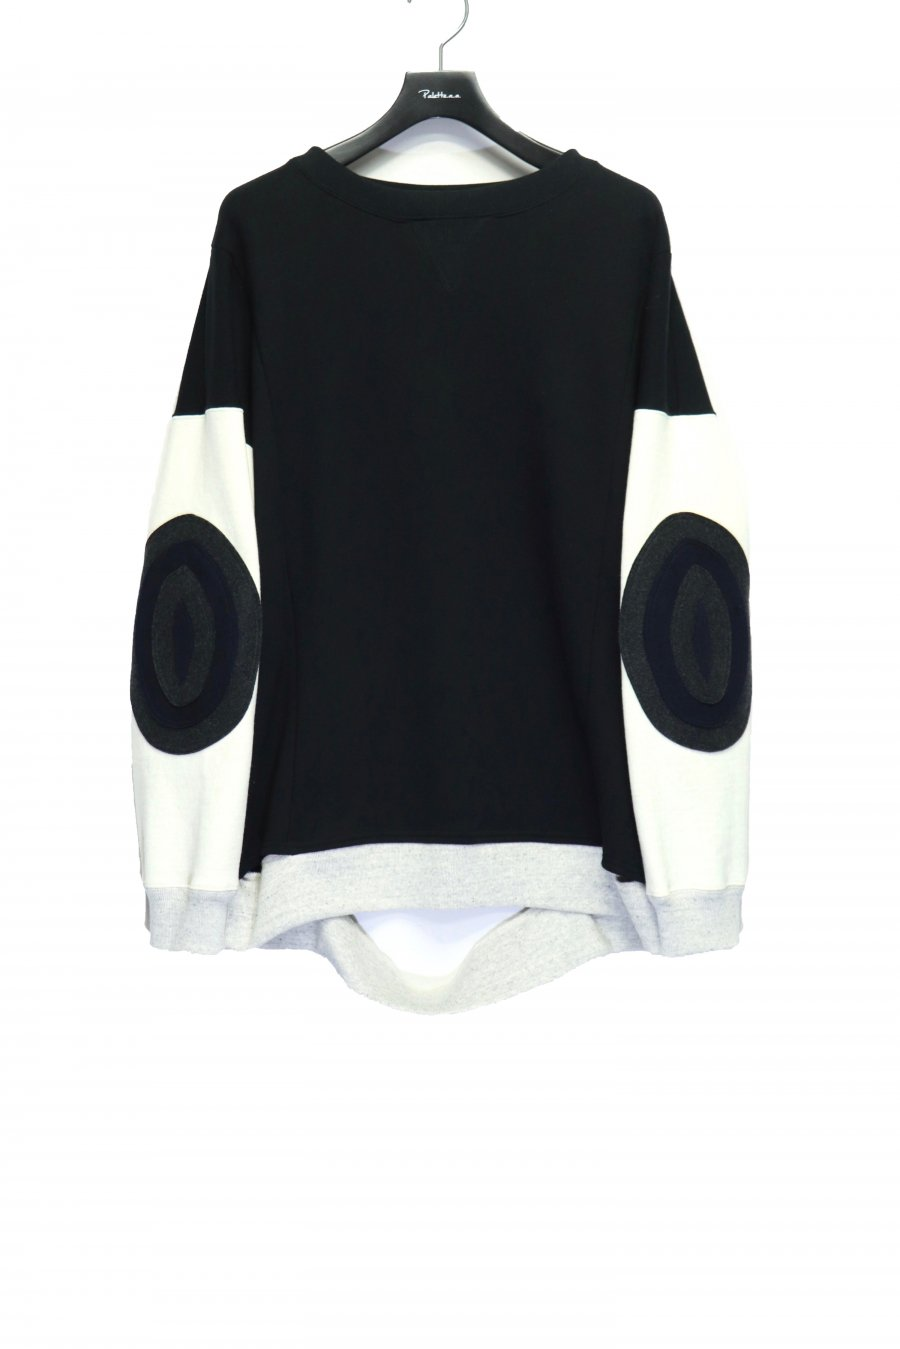 LEH  Patchwork Sweat Trainer(BLACK)<img class='new_mark_img2' src='https://img.shop-pro.jp/img/new/icons15.gif' style='border:none;display:inline;margin:0px;padding:0px;width:auto;' />